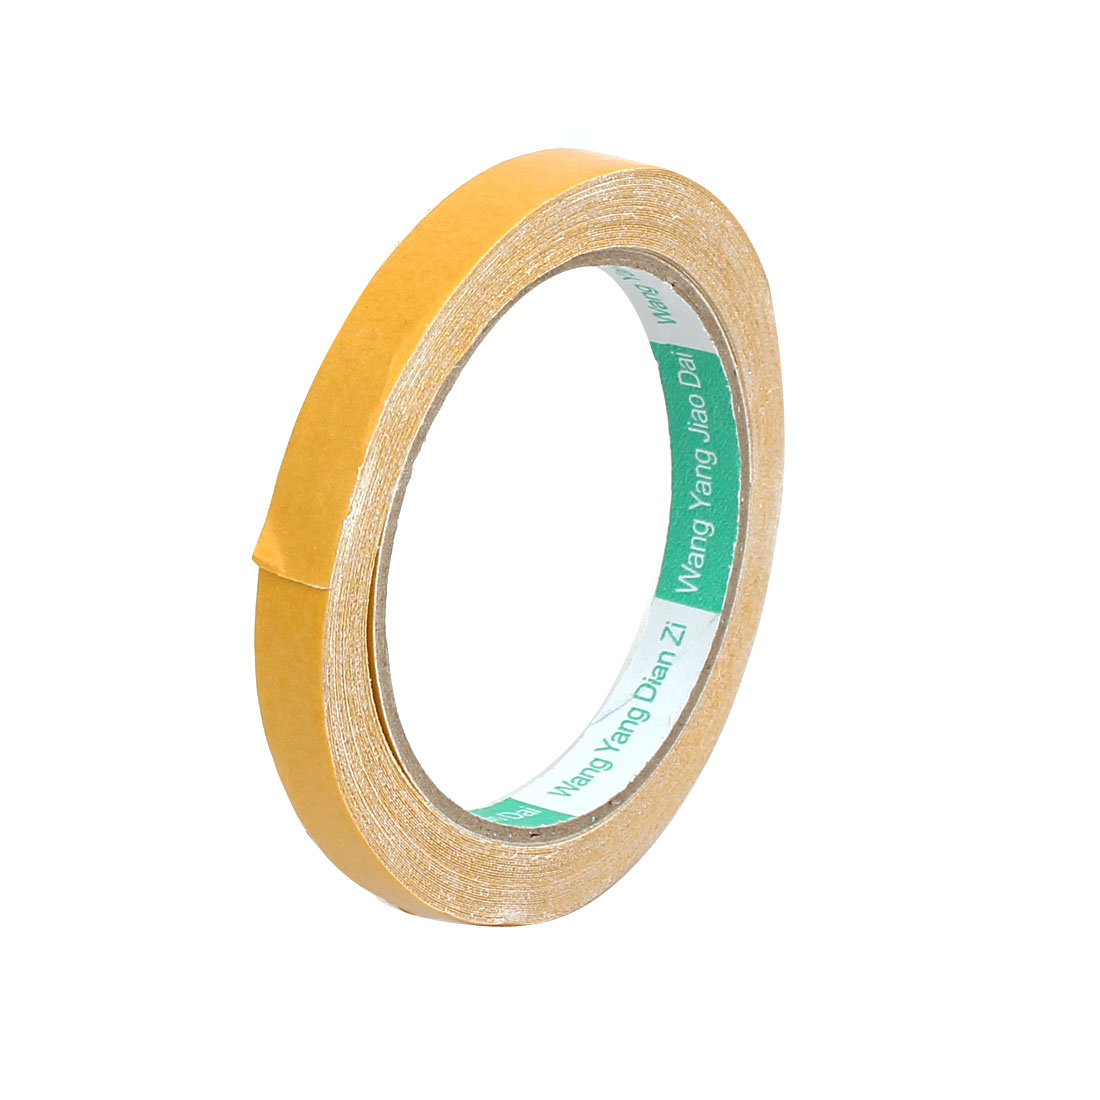 12mmx0.3mm Double Sided Waterproof Tape Adhesive Sticker Glue Strip Sealing 10M